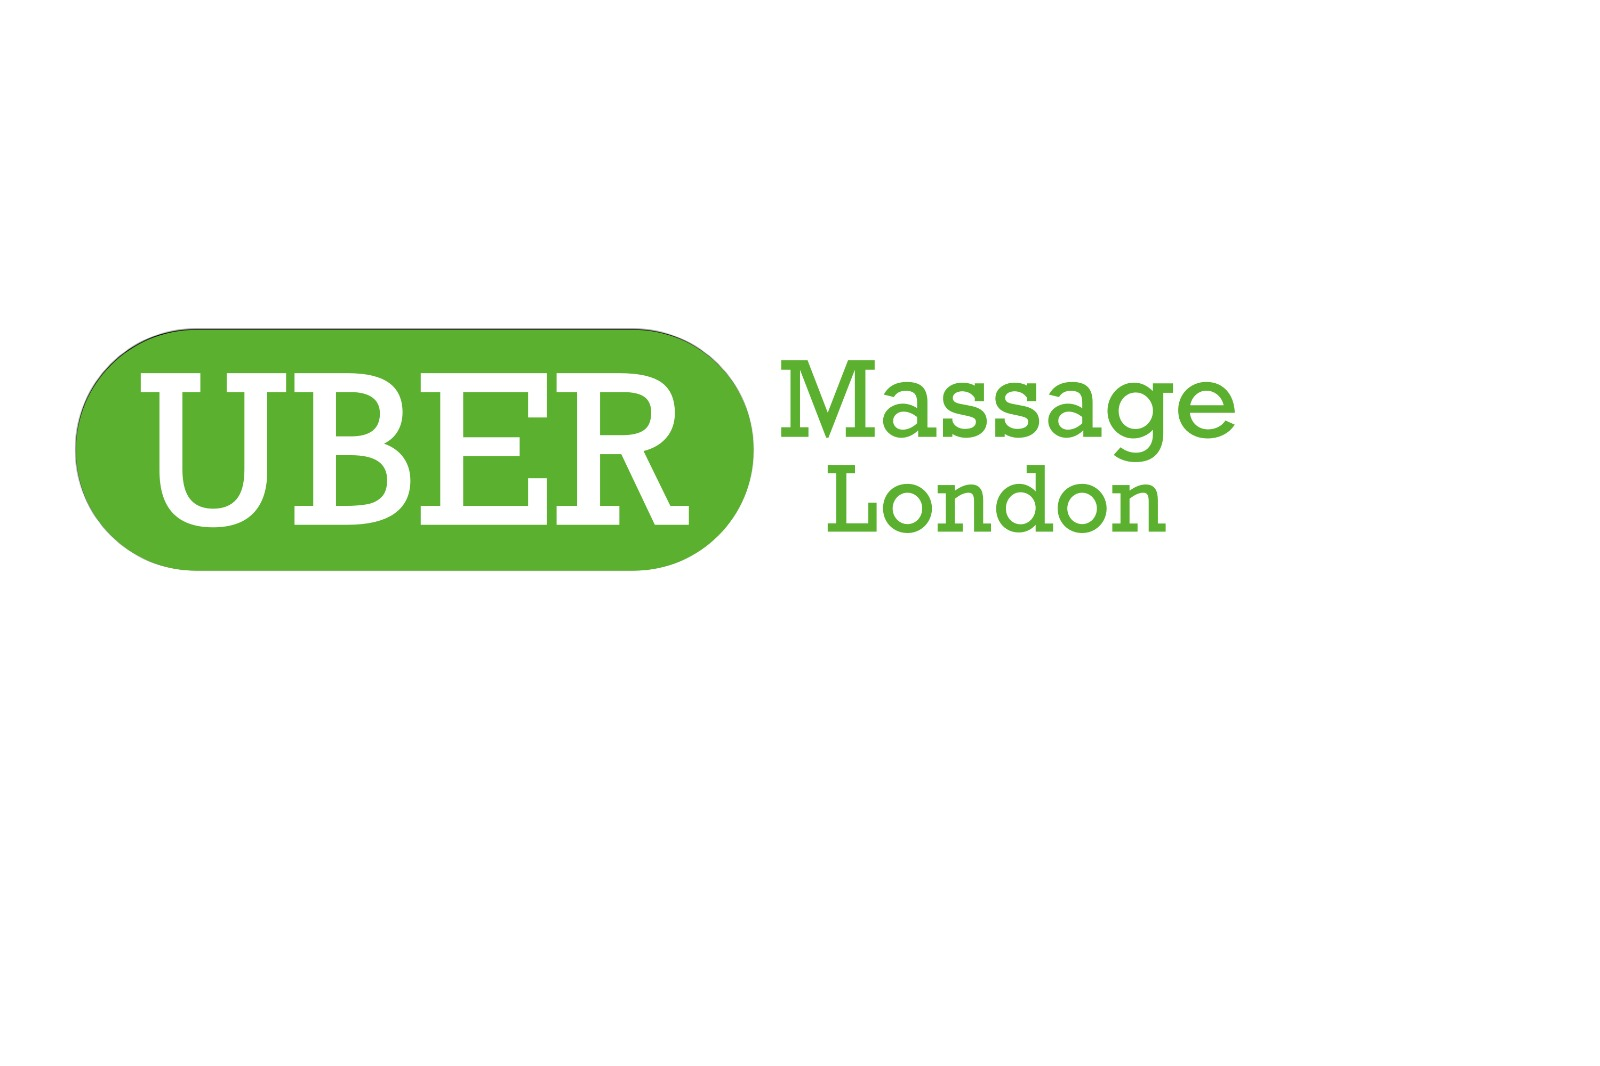 Uber Massage London UML